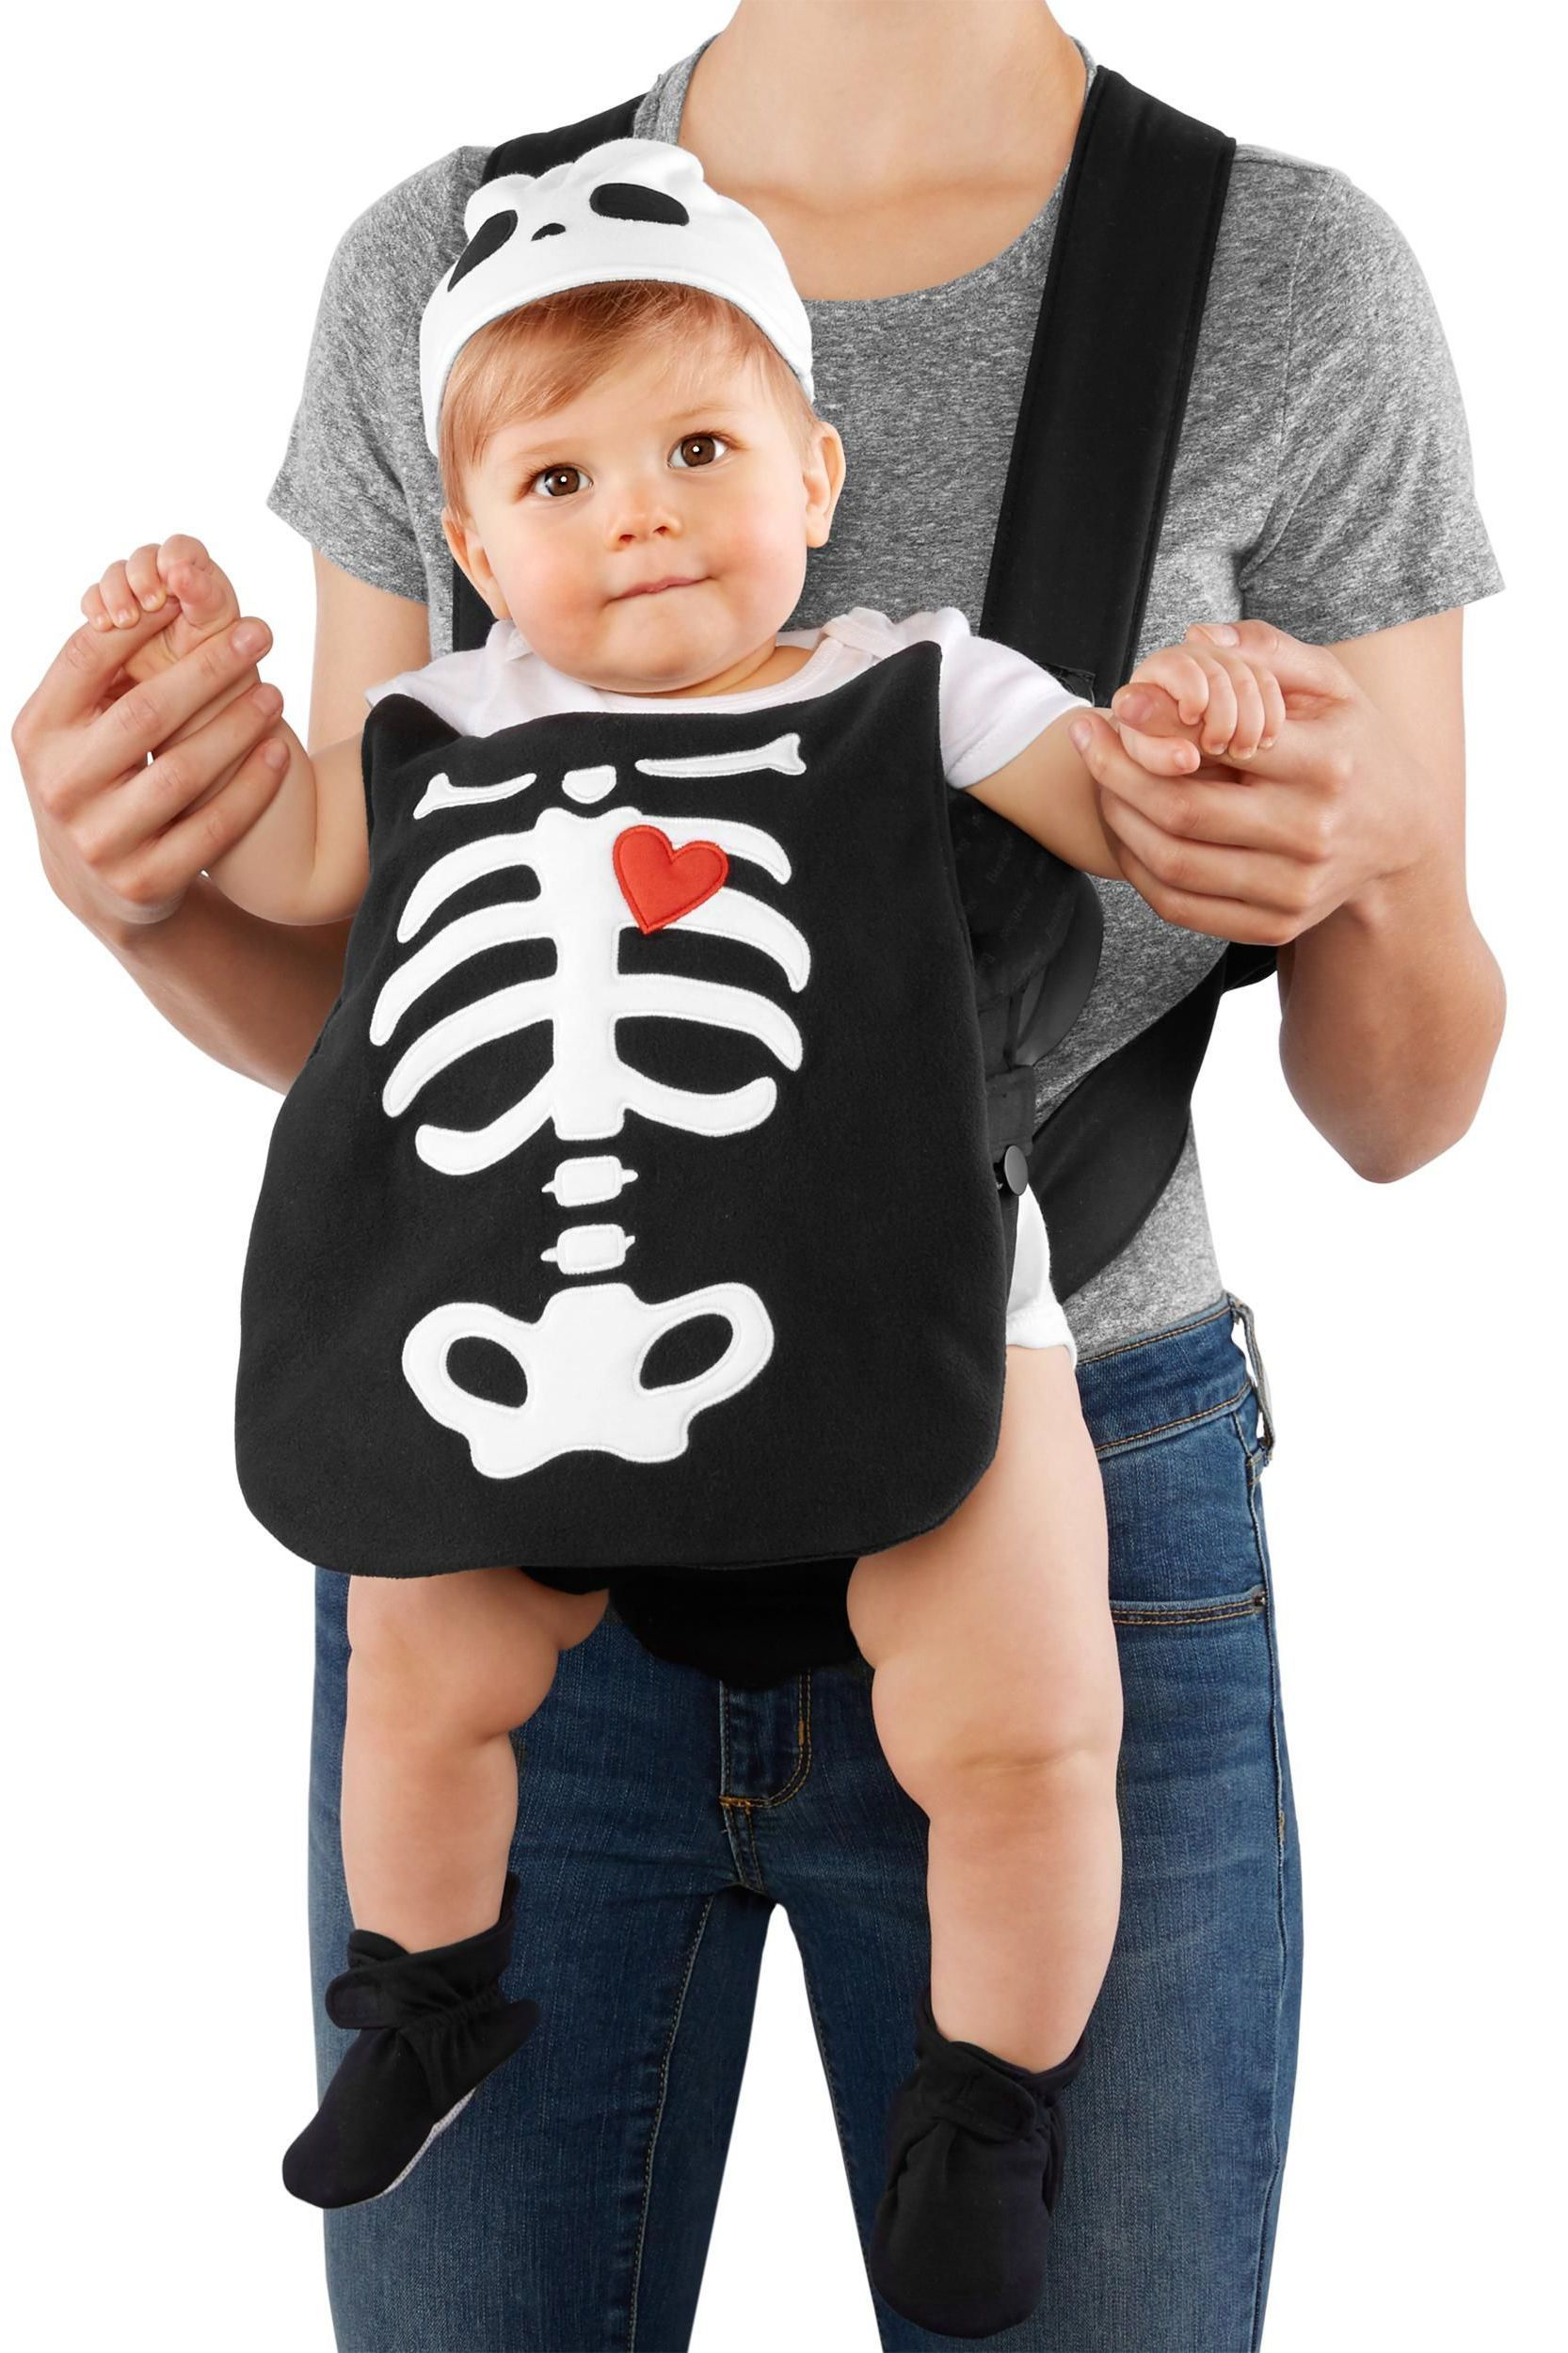 17 Irresistible Newborn Halloween Costume Ideas